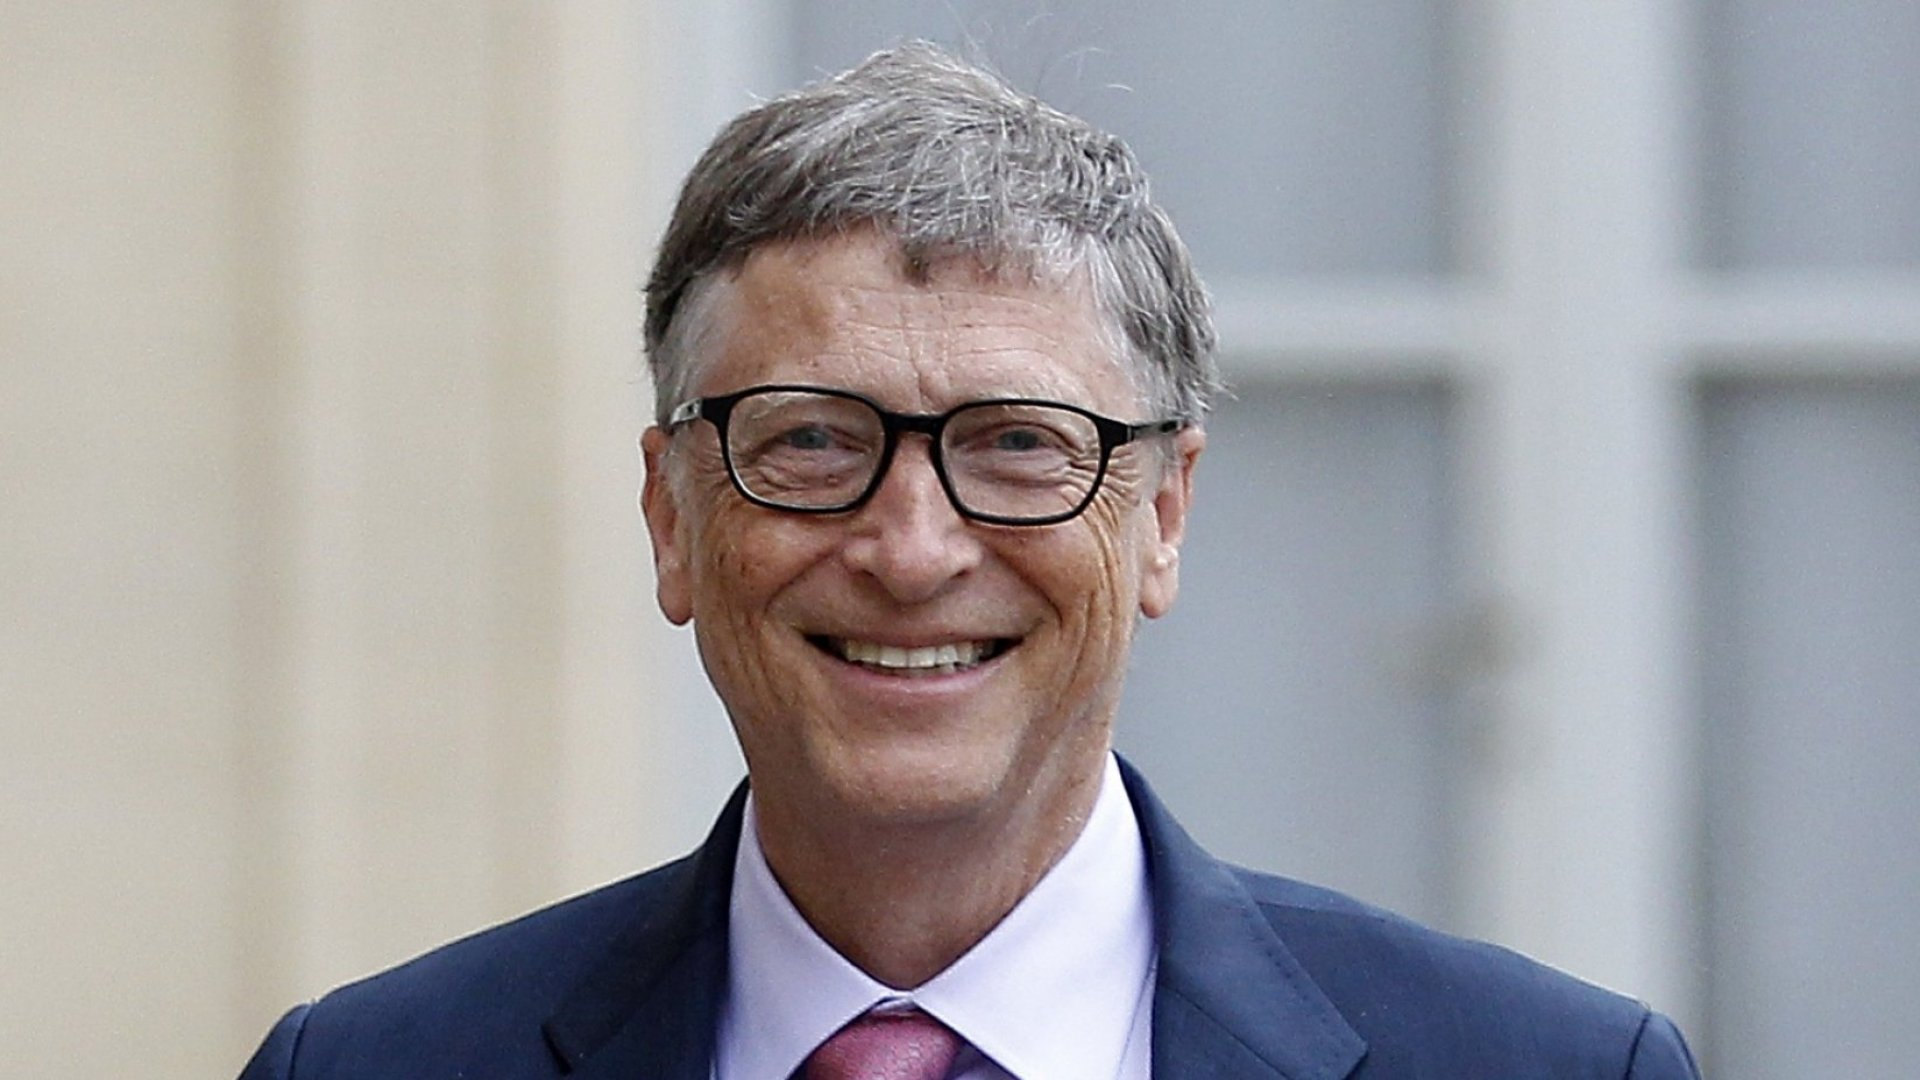 Bill Gates Thinks You Should Read These 5 Bestsellers